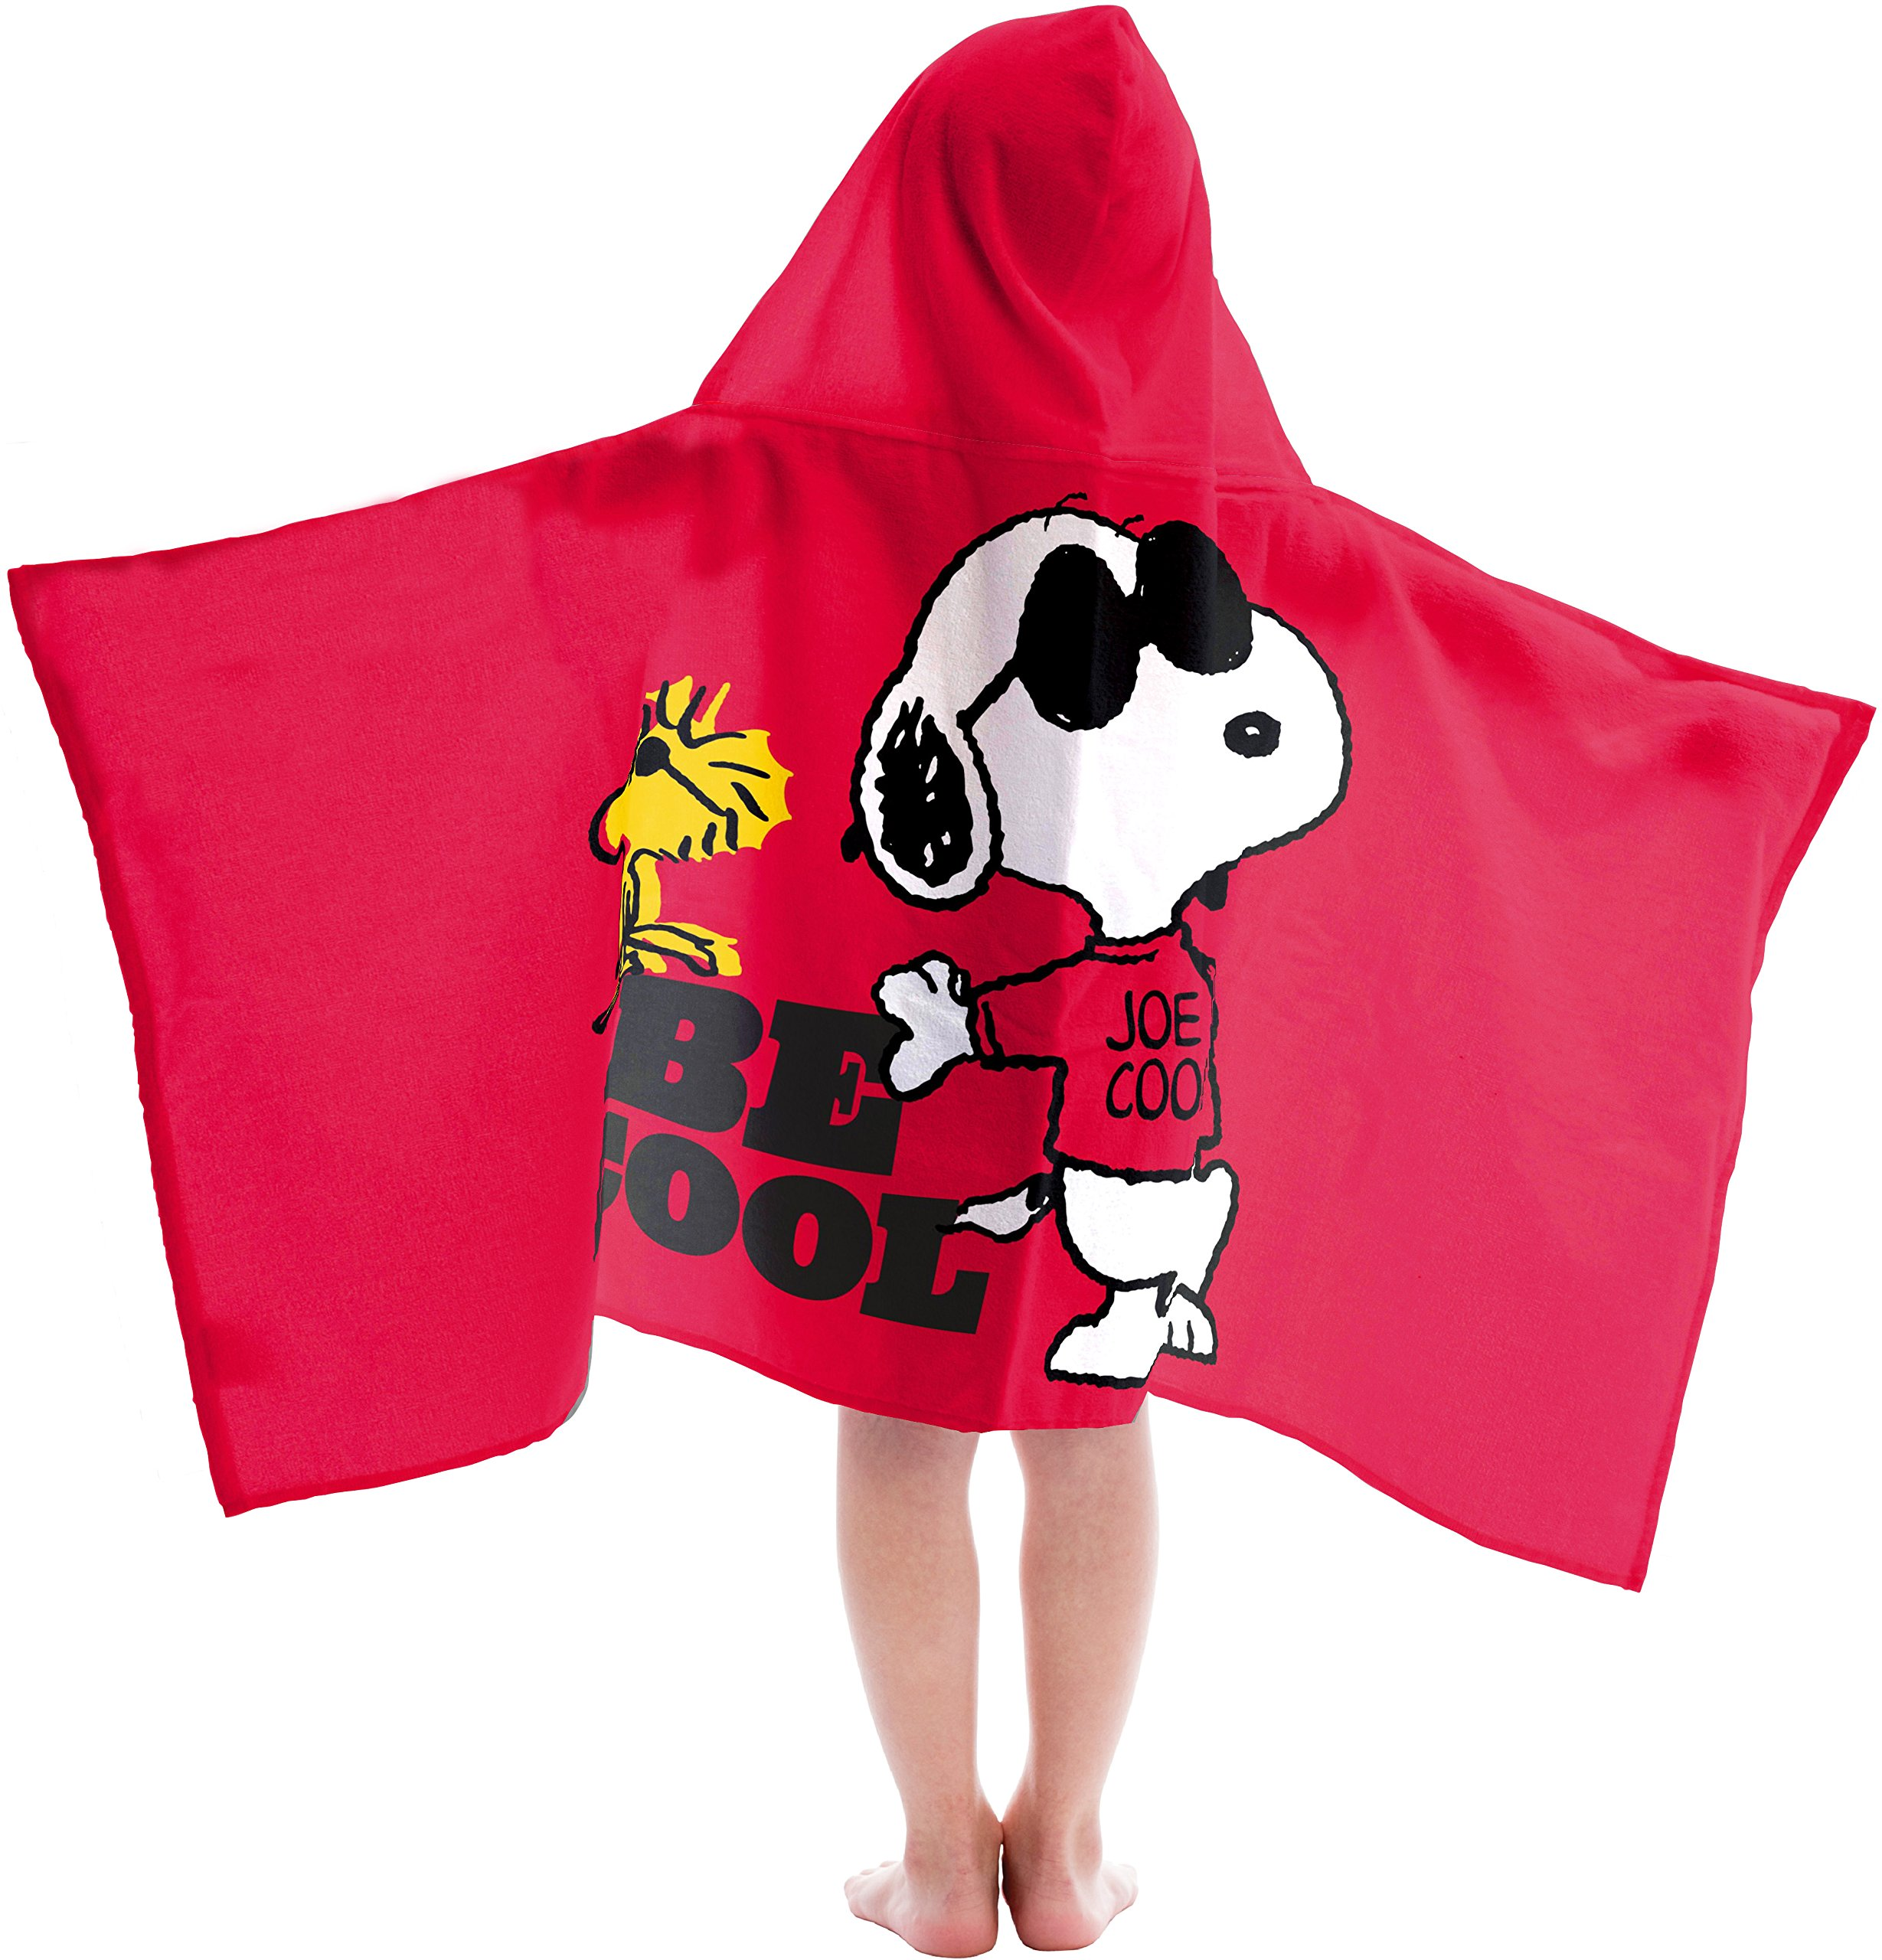 Peanuts Super Soft & Absorbent Kids Hooded Bath/Pool/Beach Towel, Featuring Snoopy & Woodstock - Fade Resistant Cotton Terry Towel, 22.5'' Inch x 51'' Inch (Official Peanuts Product)